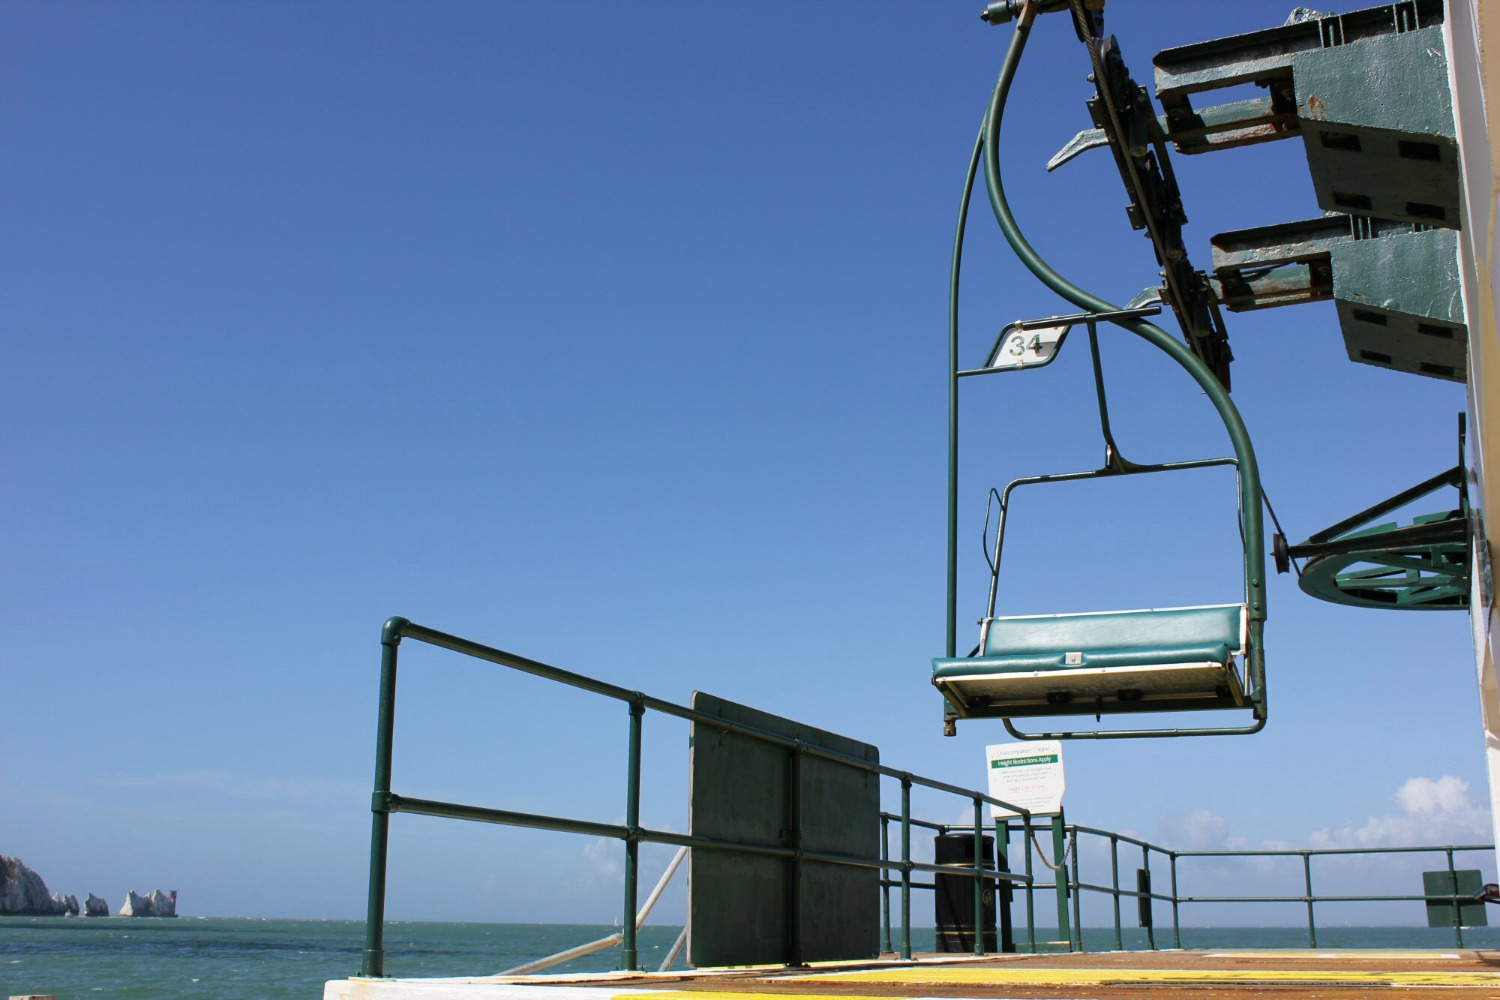 The chair lift from Alum Bay back up to The Needles attraction - discovering the Isle of Wight coast